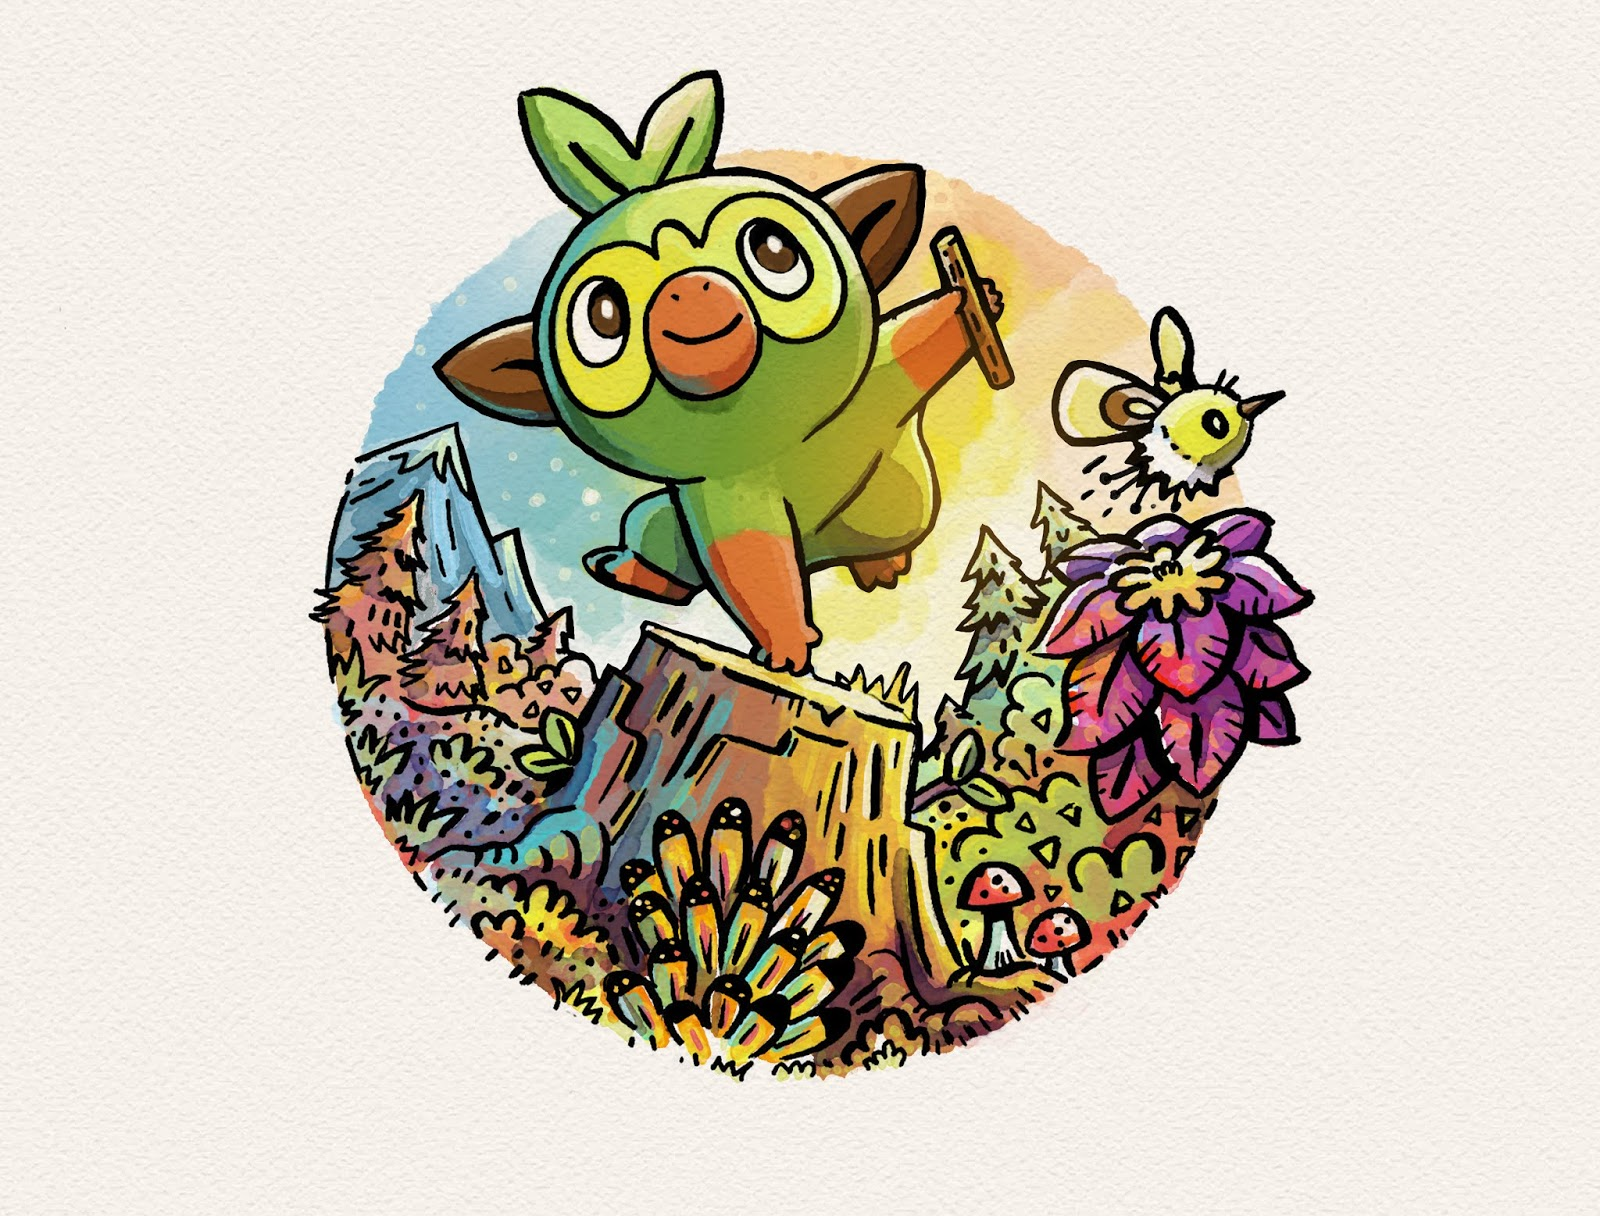 Grookey Pokemon Sword Shield Grookey is the pokemon whish has one type (grass) from the 8 generation. grookey pokemon sword shield